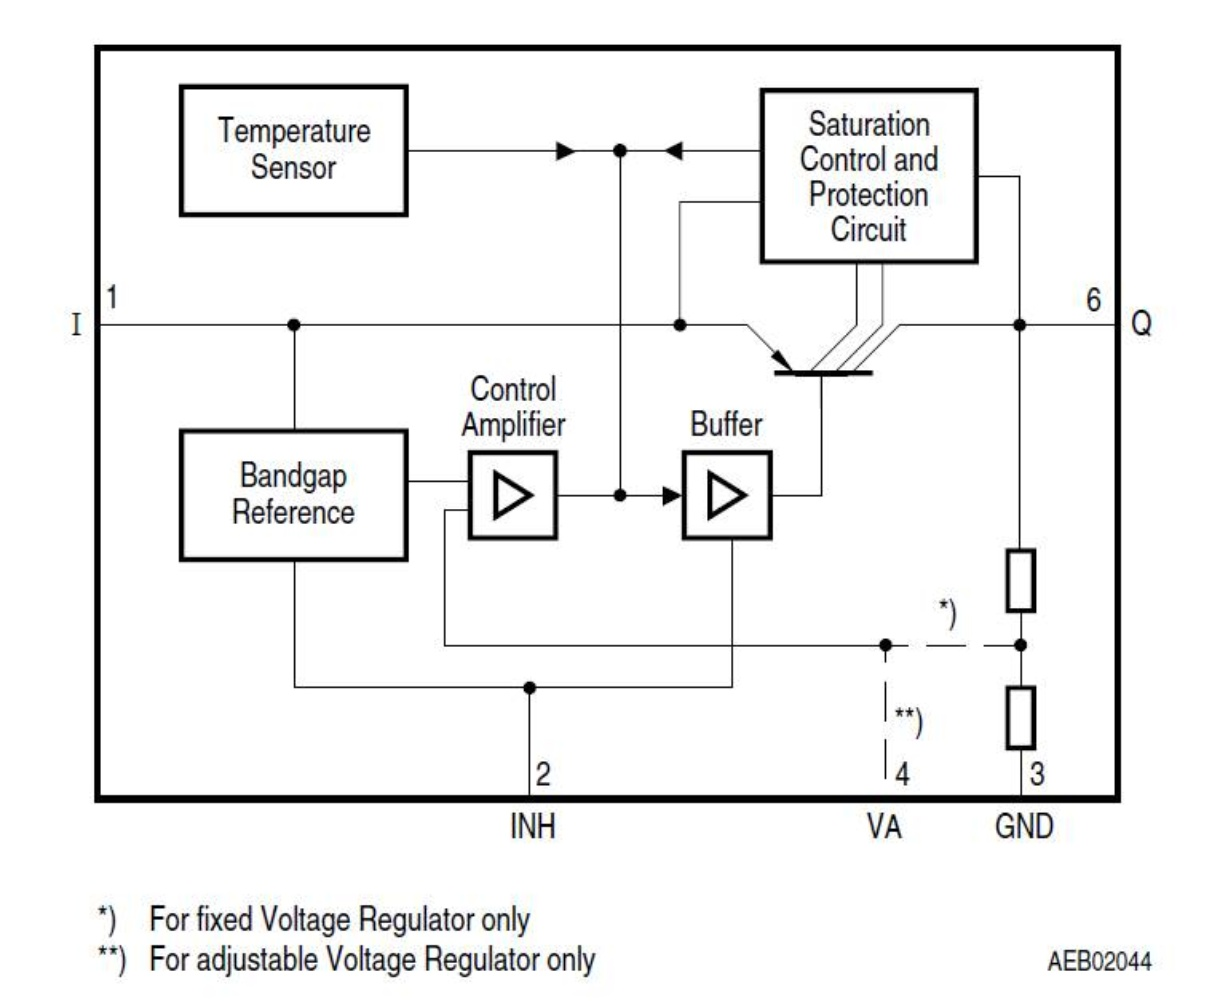 Ifx25401tbv Infineon Technologies Power Opamp Voltage Regulator With Overvoltage Protection Circuit Prevnext